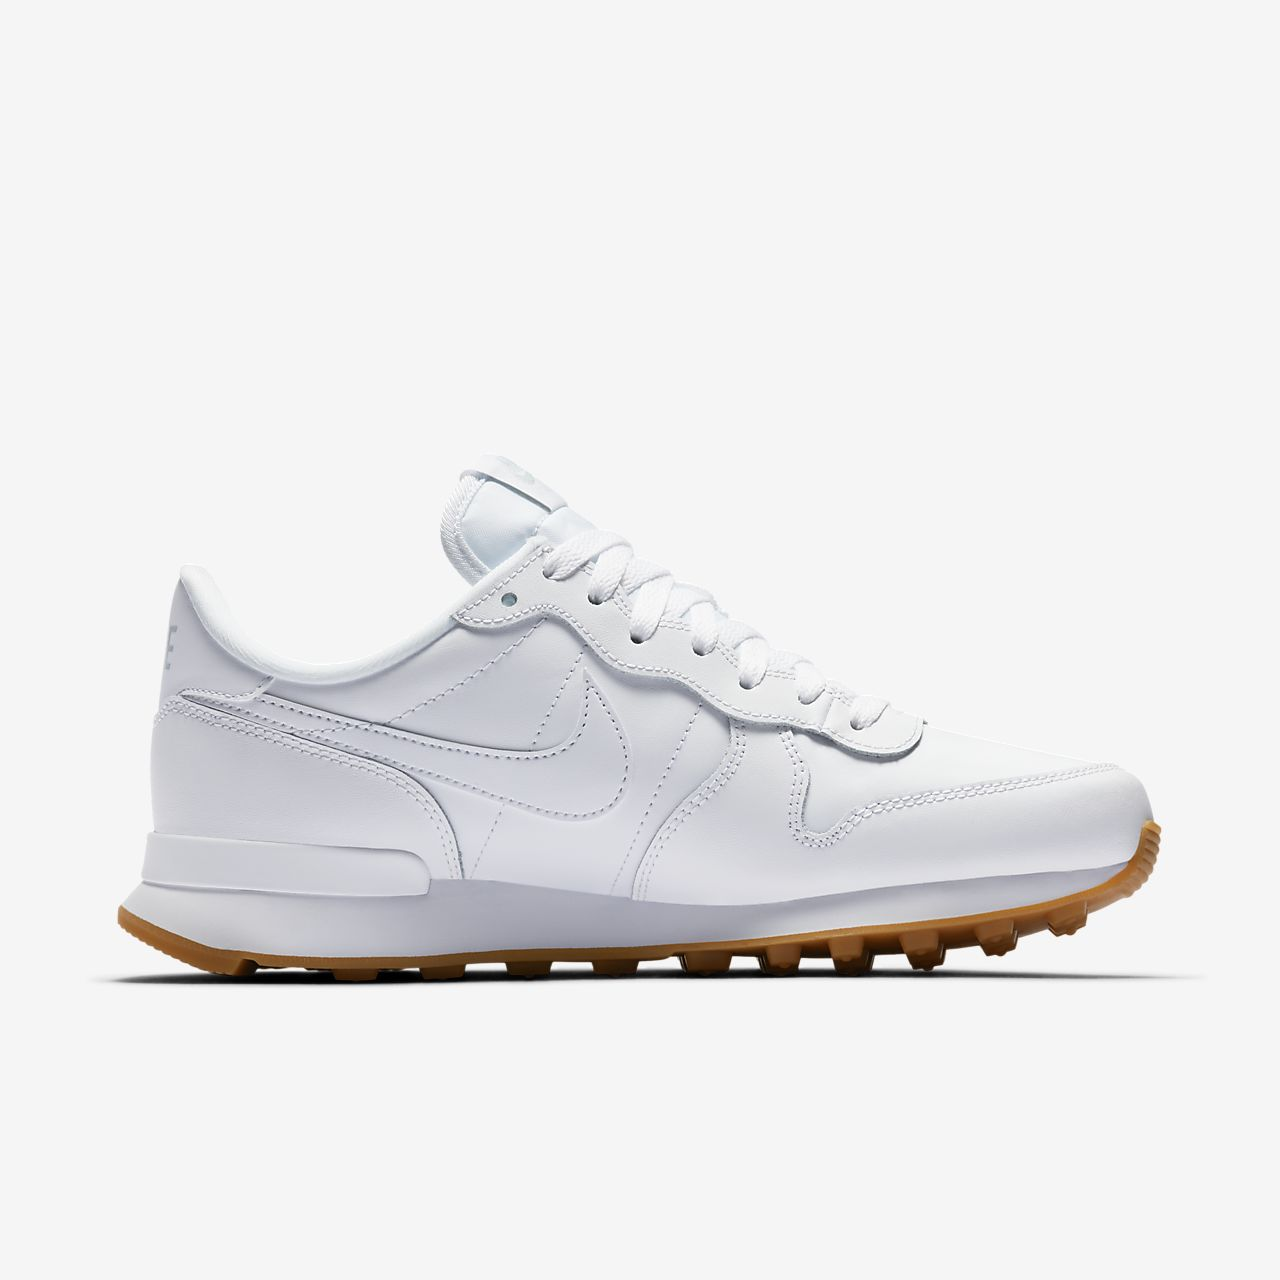 Internationalist Nike Damenschuh Nike Damenschuh Internationalist Internationalist Nike F1KJTlc3